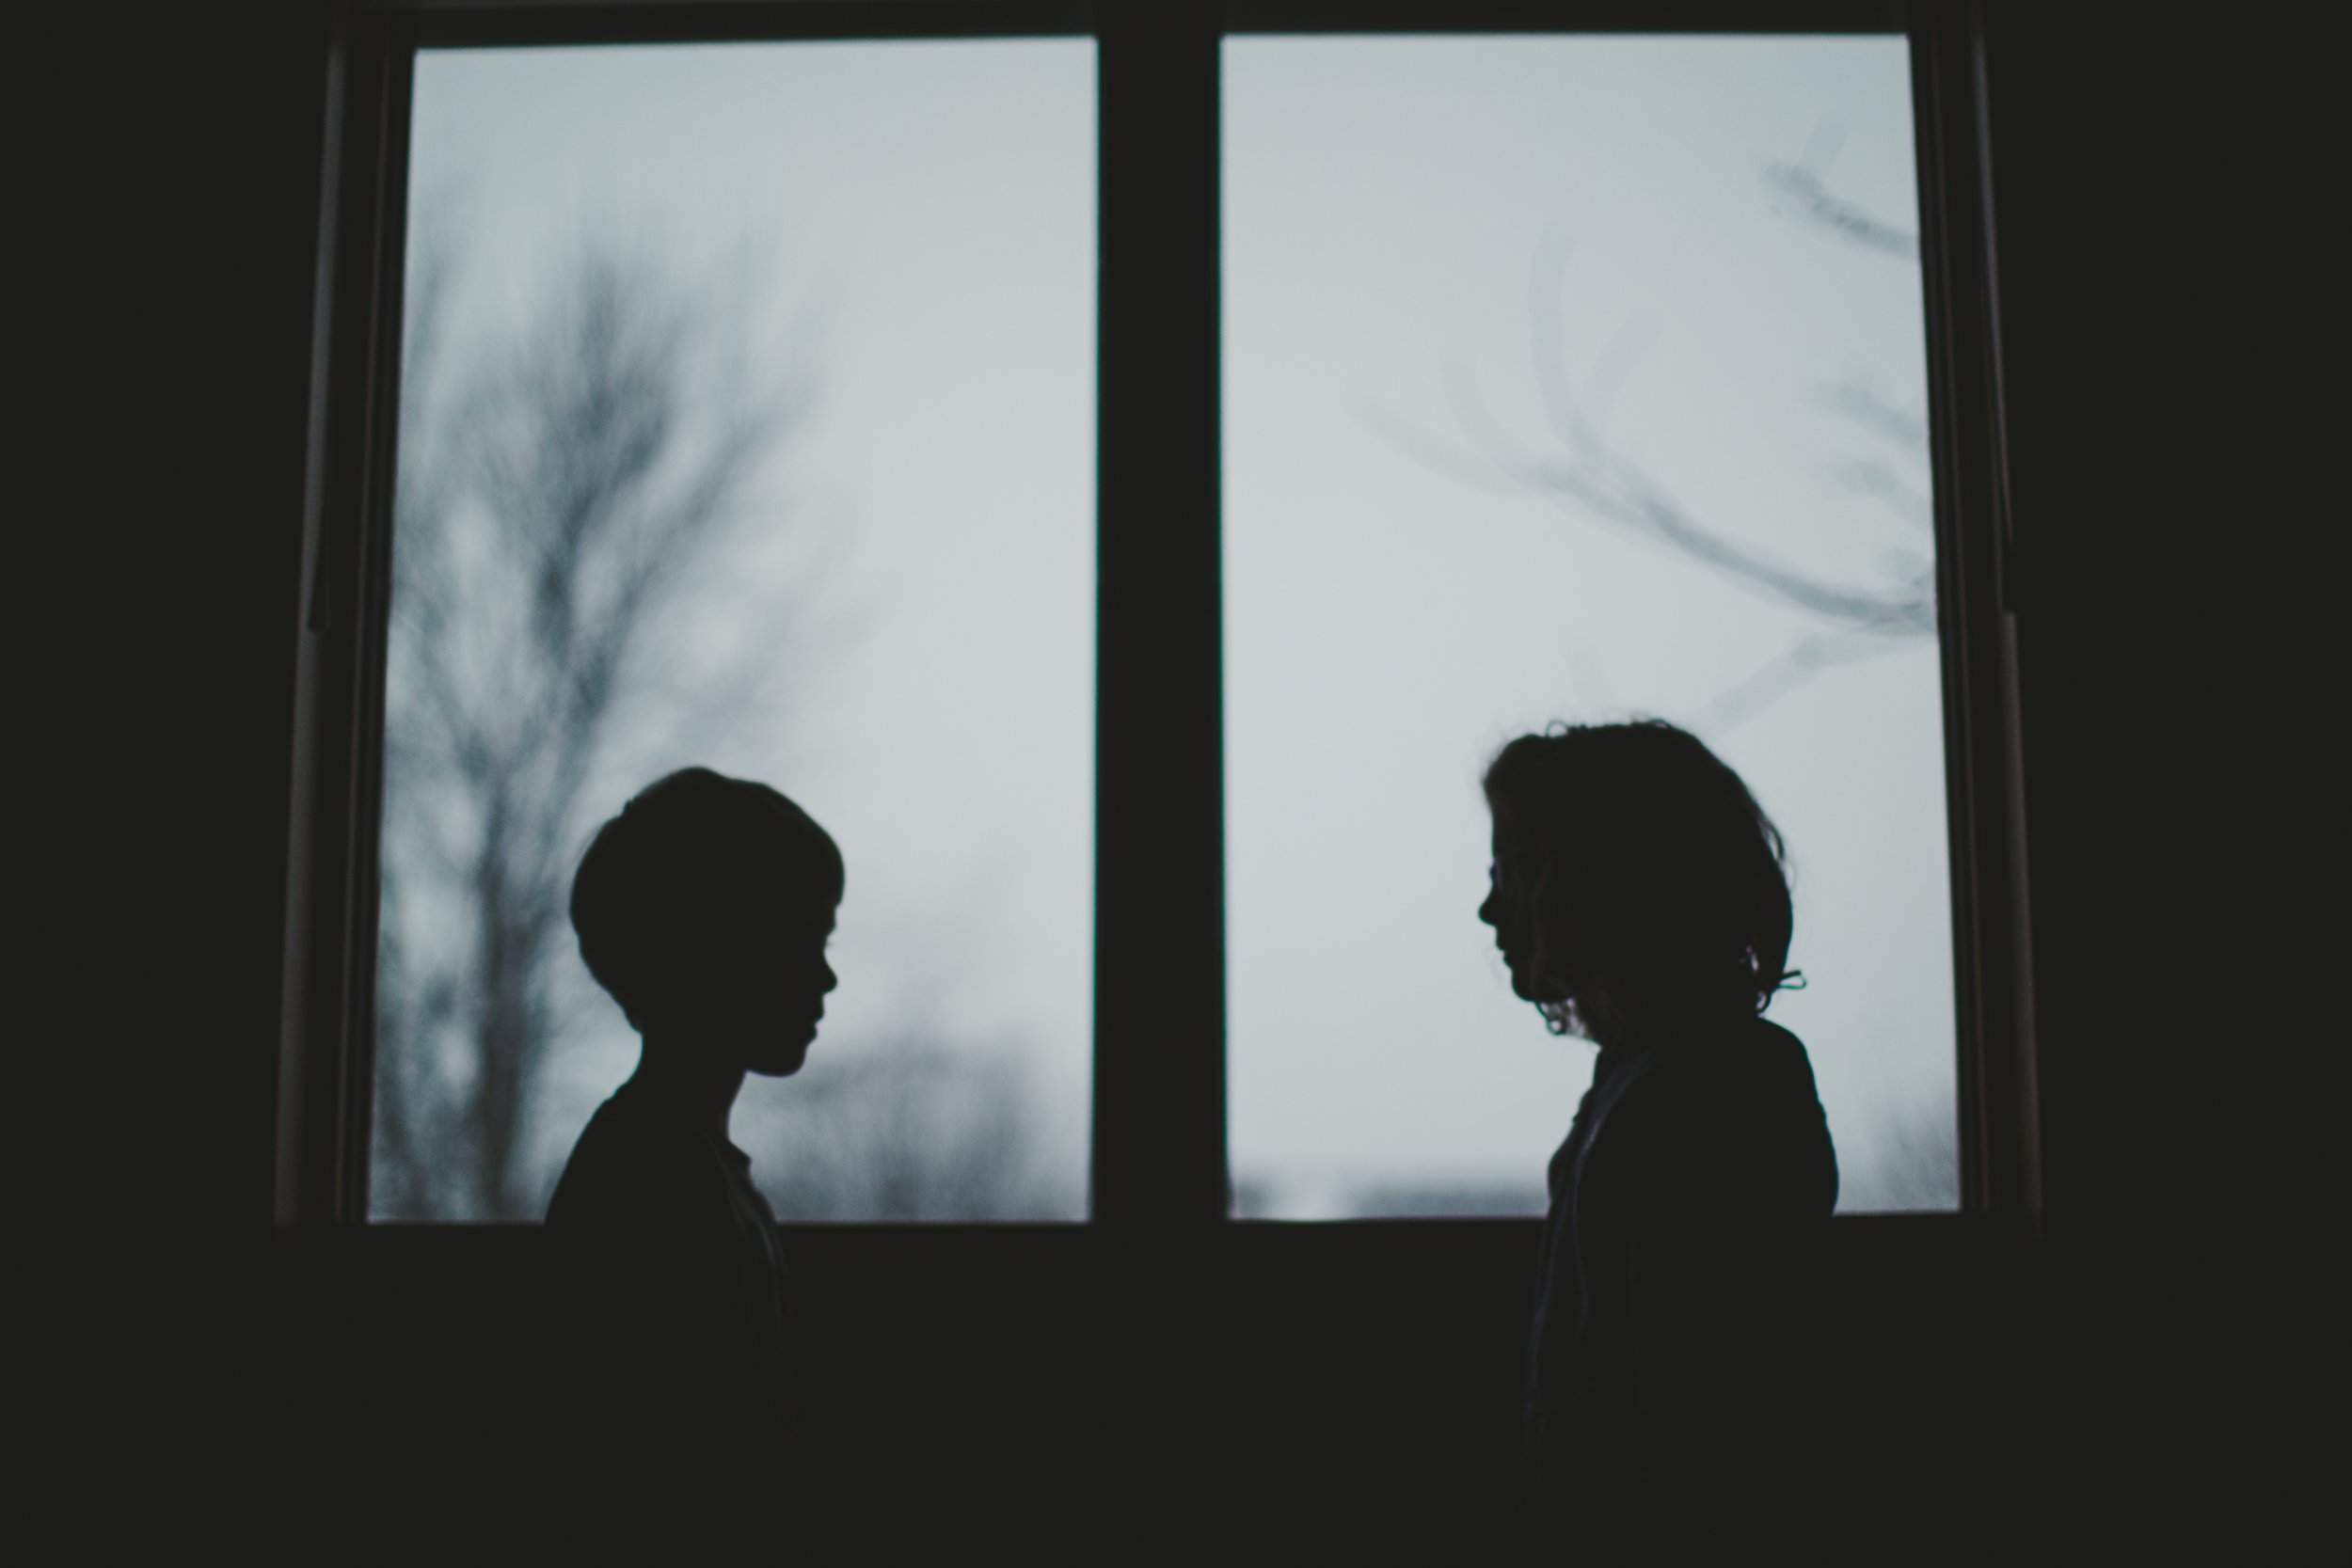 Little child and small lady mount in front of a window looking during any other formulating dual silhouettes in of a window with cloudy skies behind them.